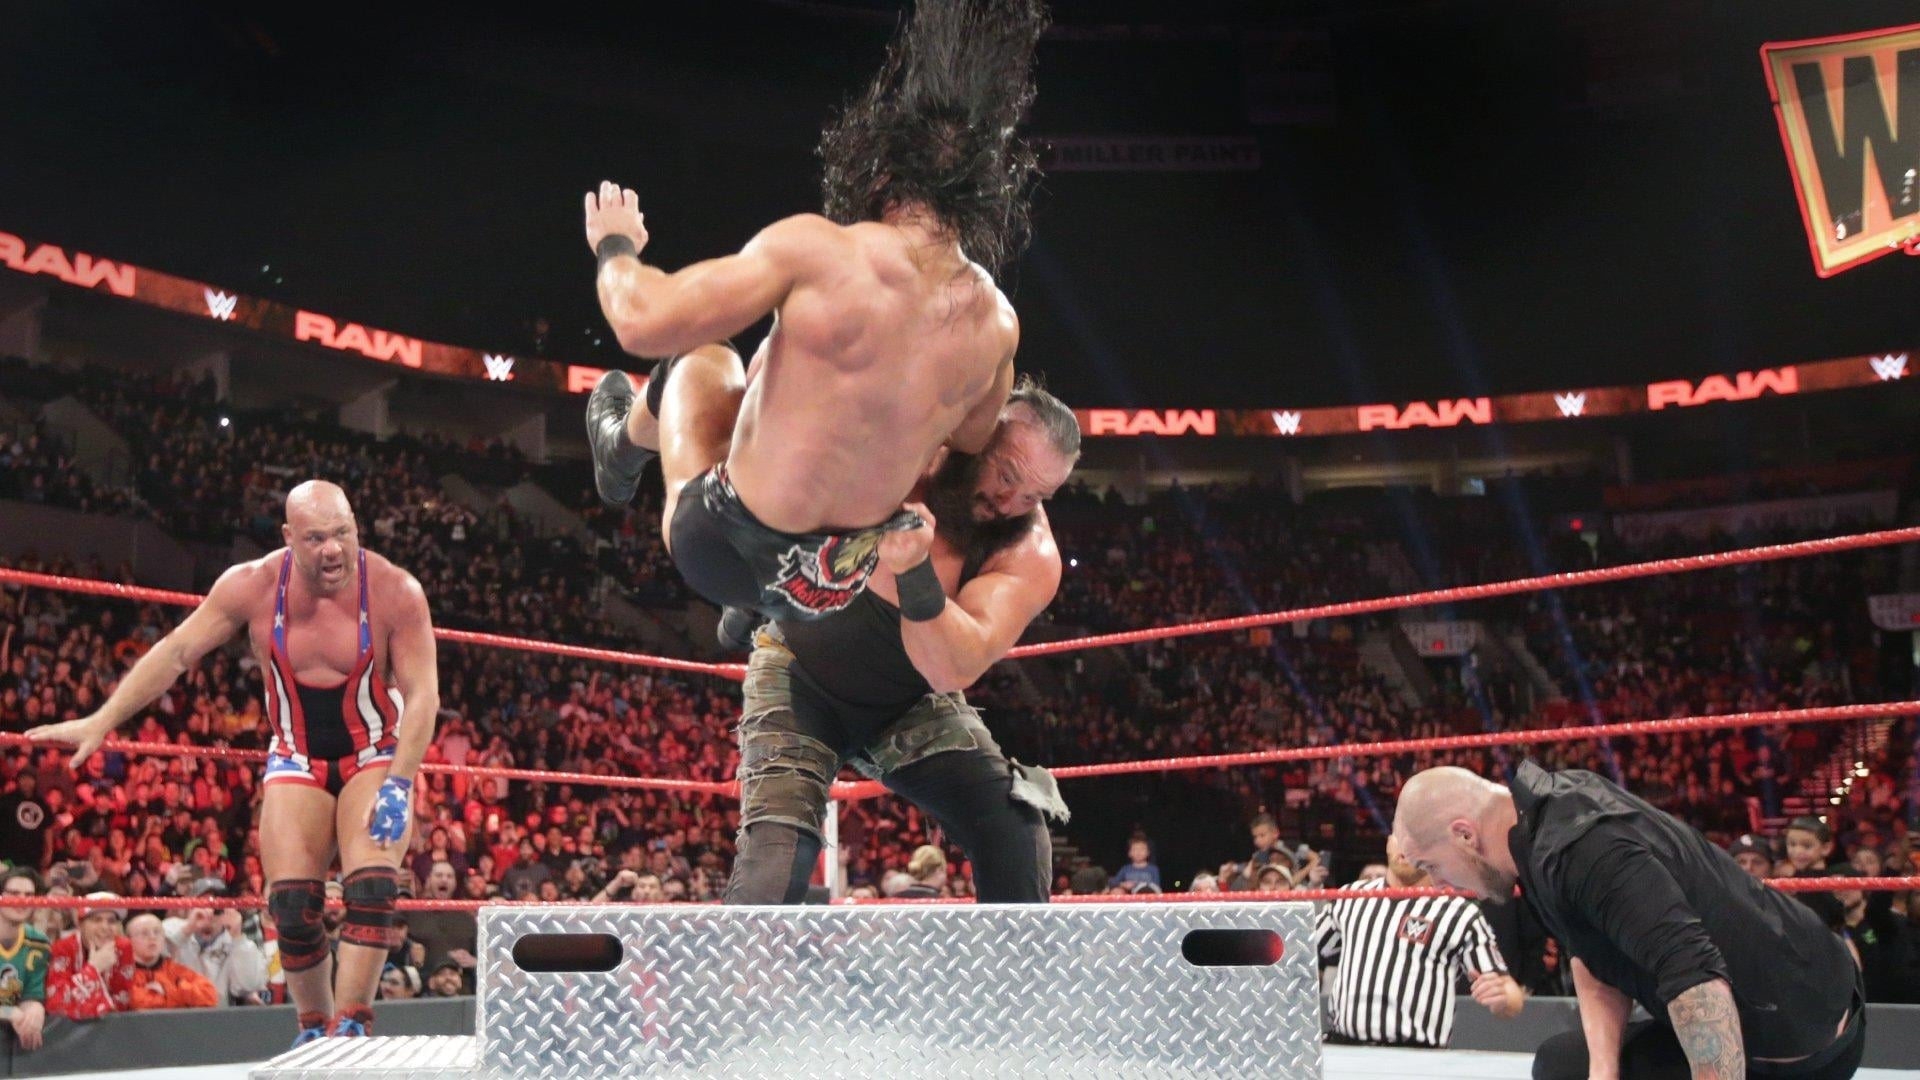 WWE Raw Season 27 :Episode 5  February 4, 2019 (Portland, OR)